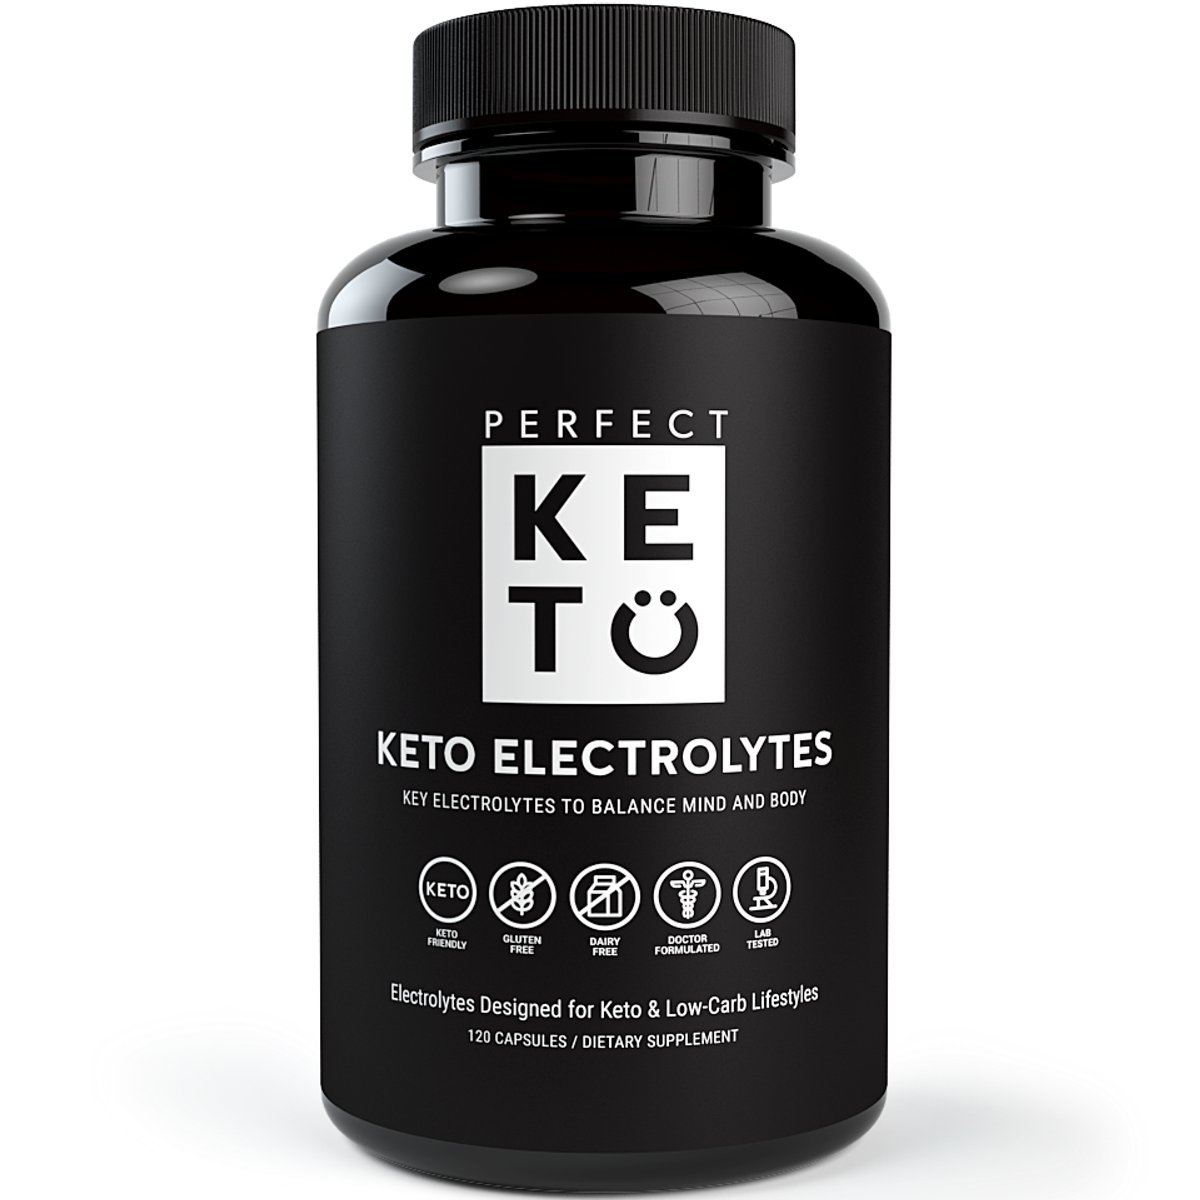 Perfect Keto Flu Electrolyte Supplement: Electrolytes Capsules for Low Carb Diet or Ketogenic Diet to Balance Mind & Body. Energy Supplements, Sodium, Potassium, Magnesium